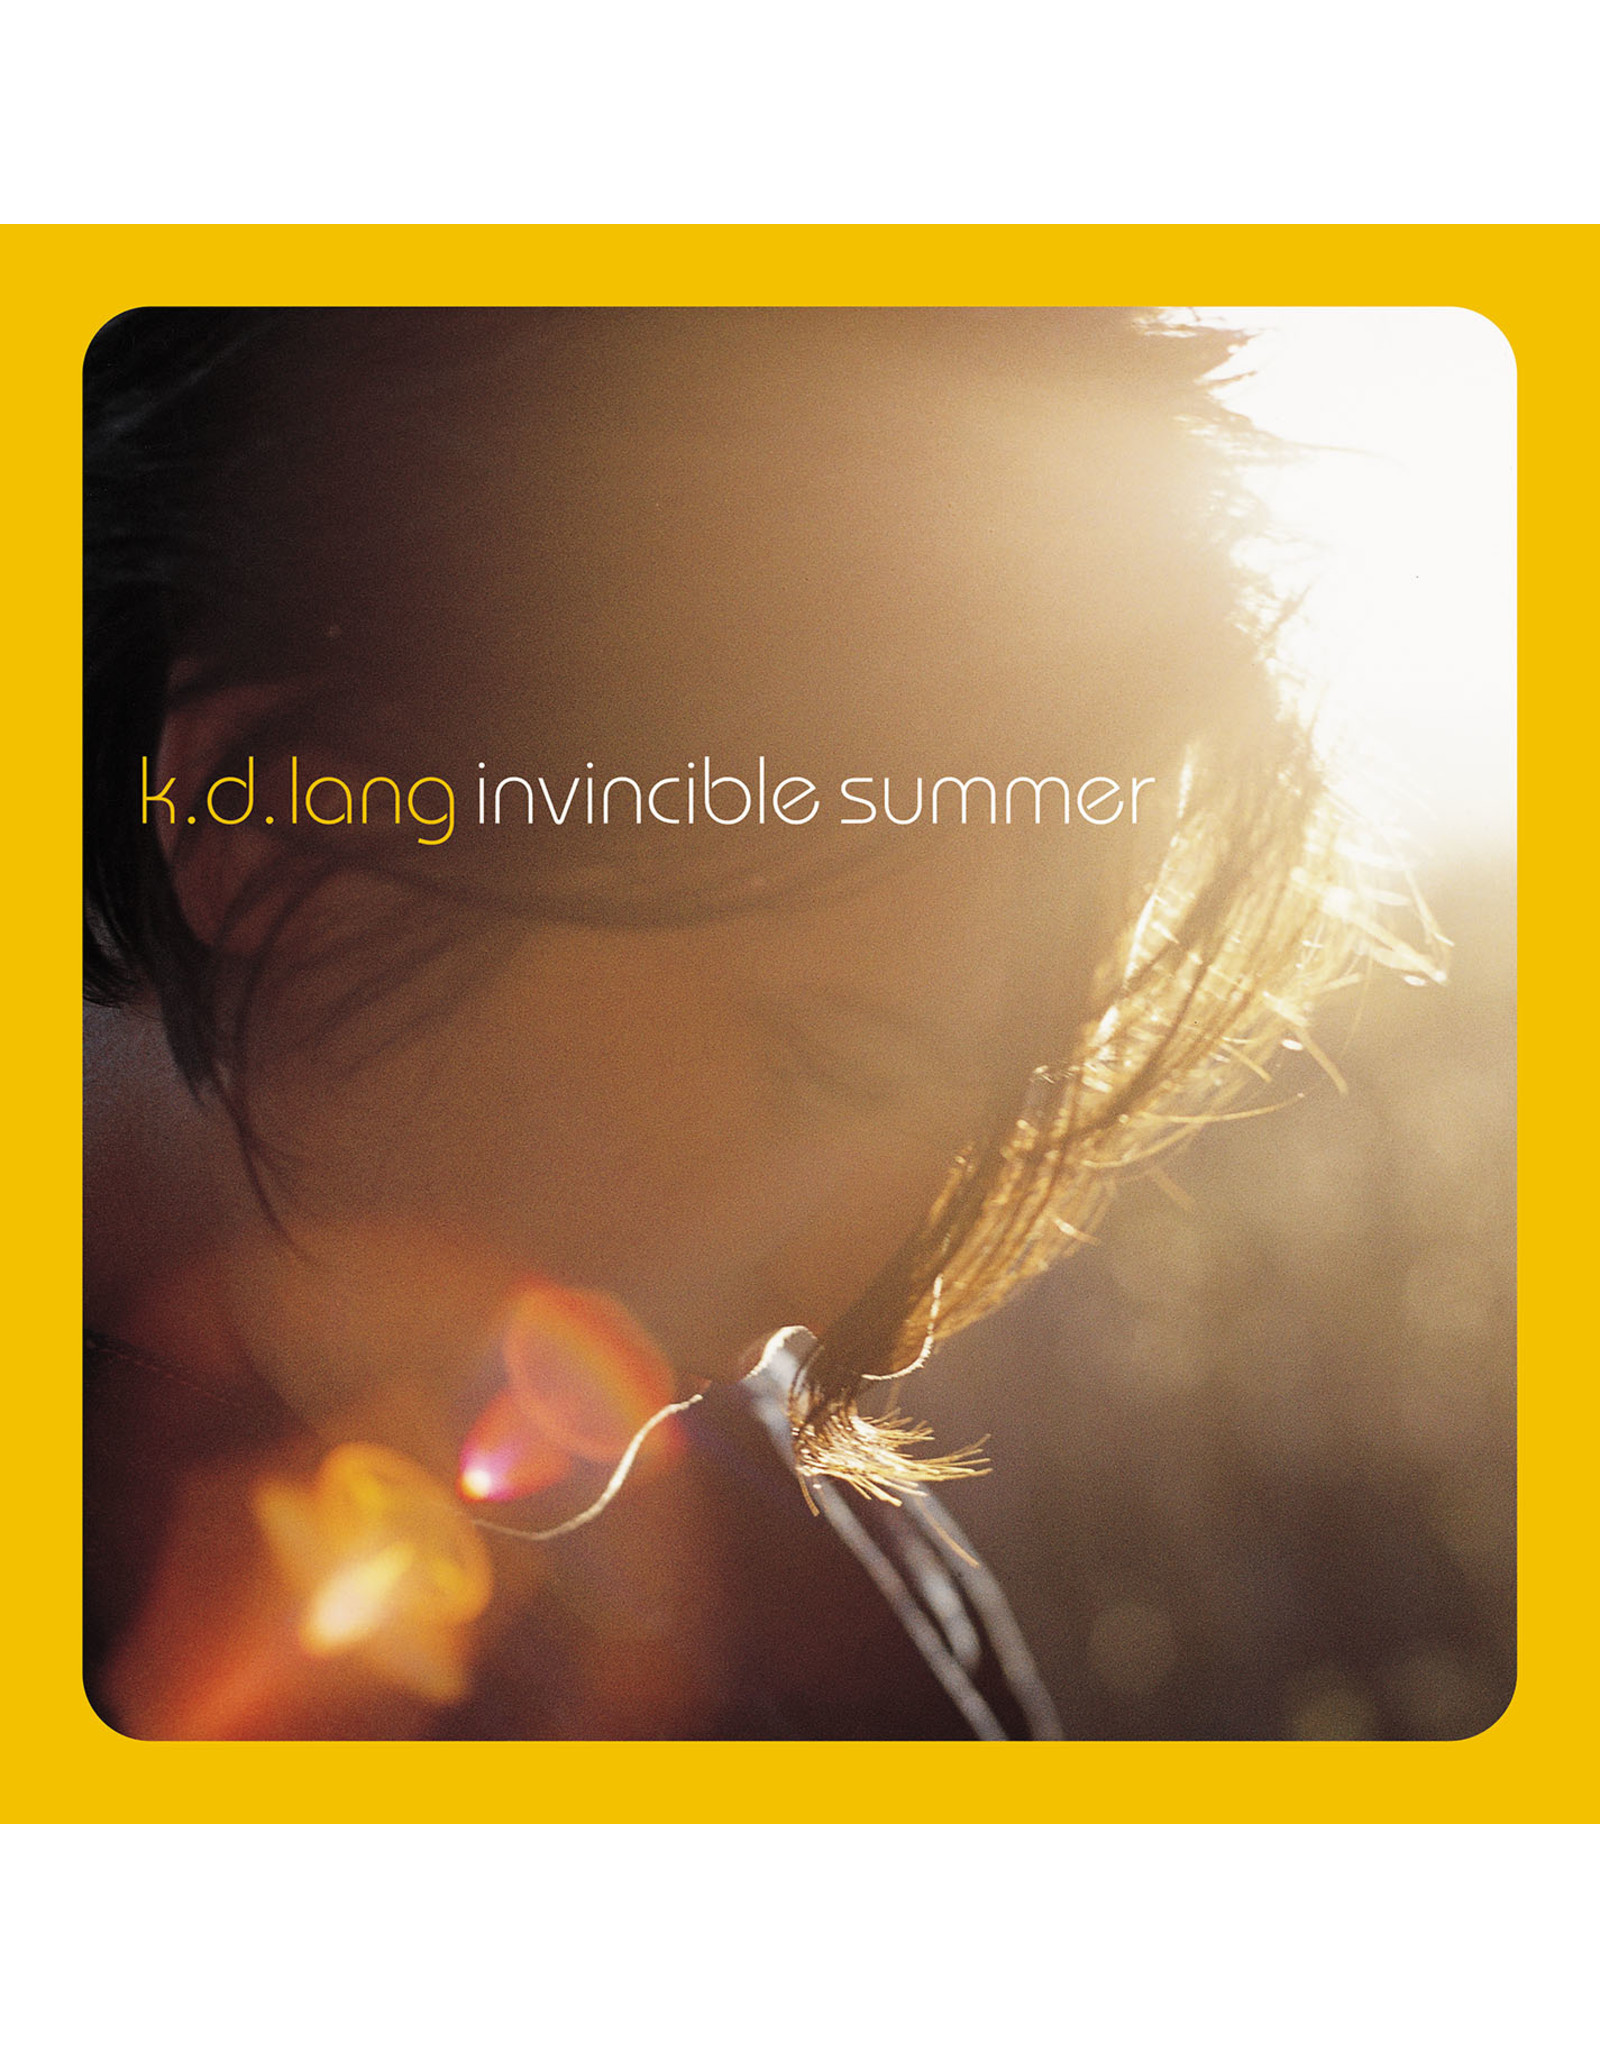 k.d. lang - Invincible Summer (20th Anniversary) [Exclusive Yellow Flame Vinyl]